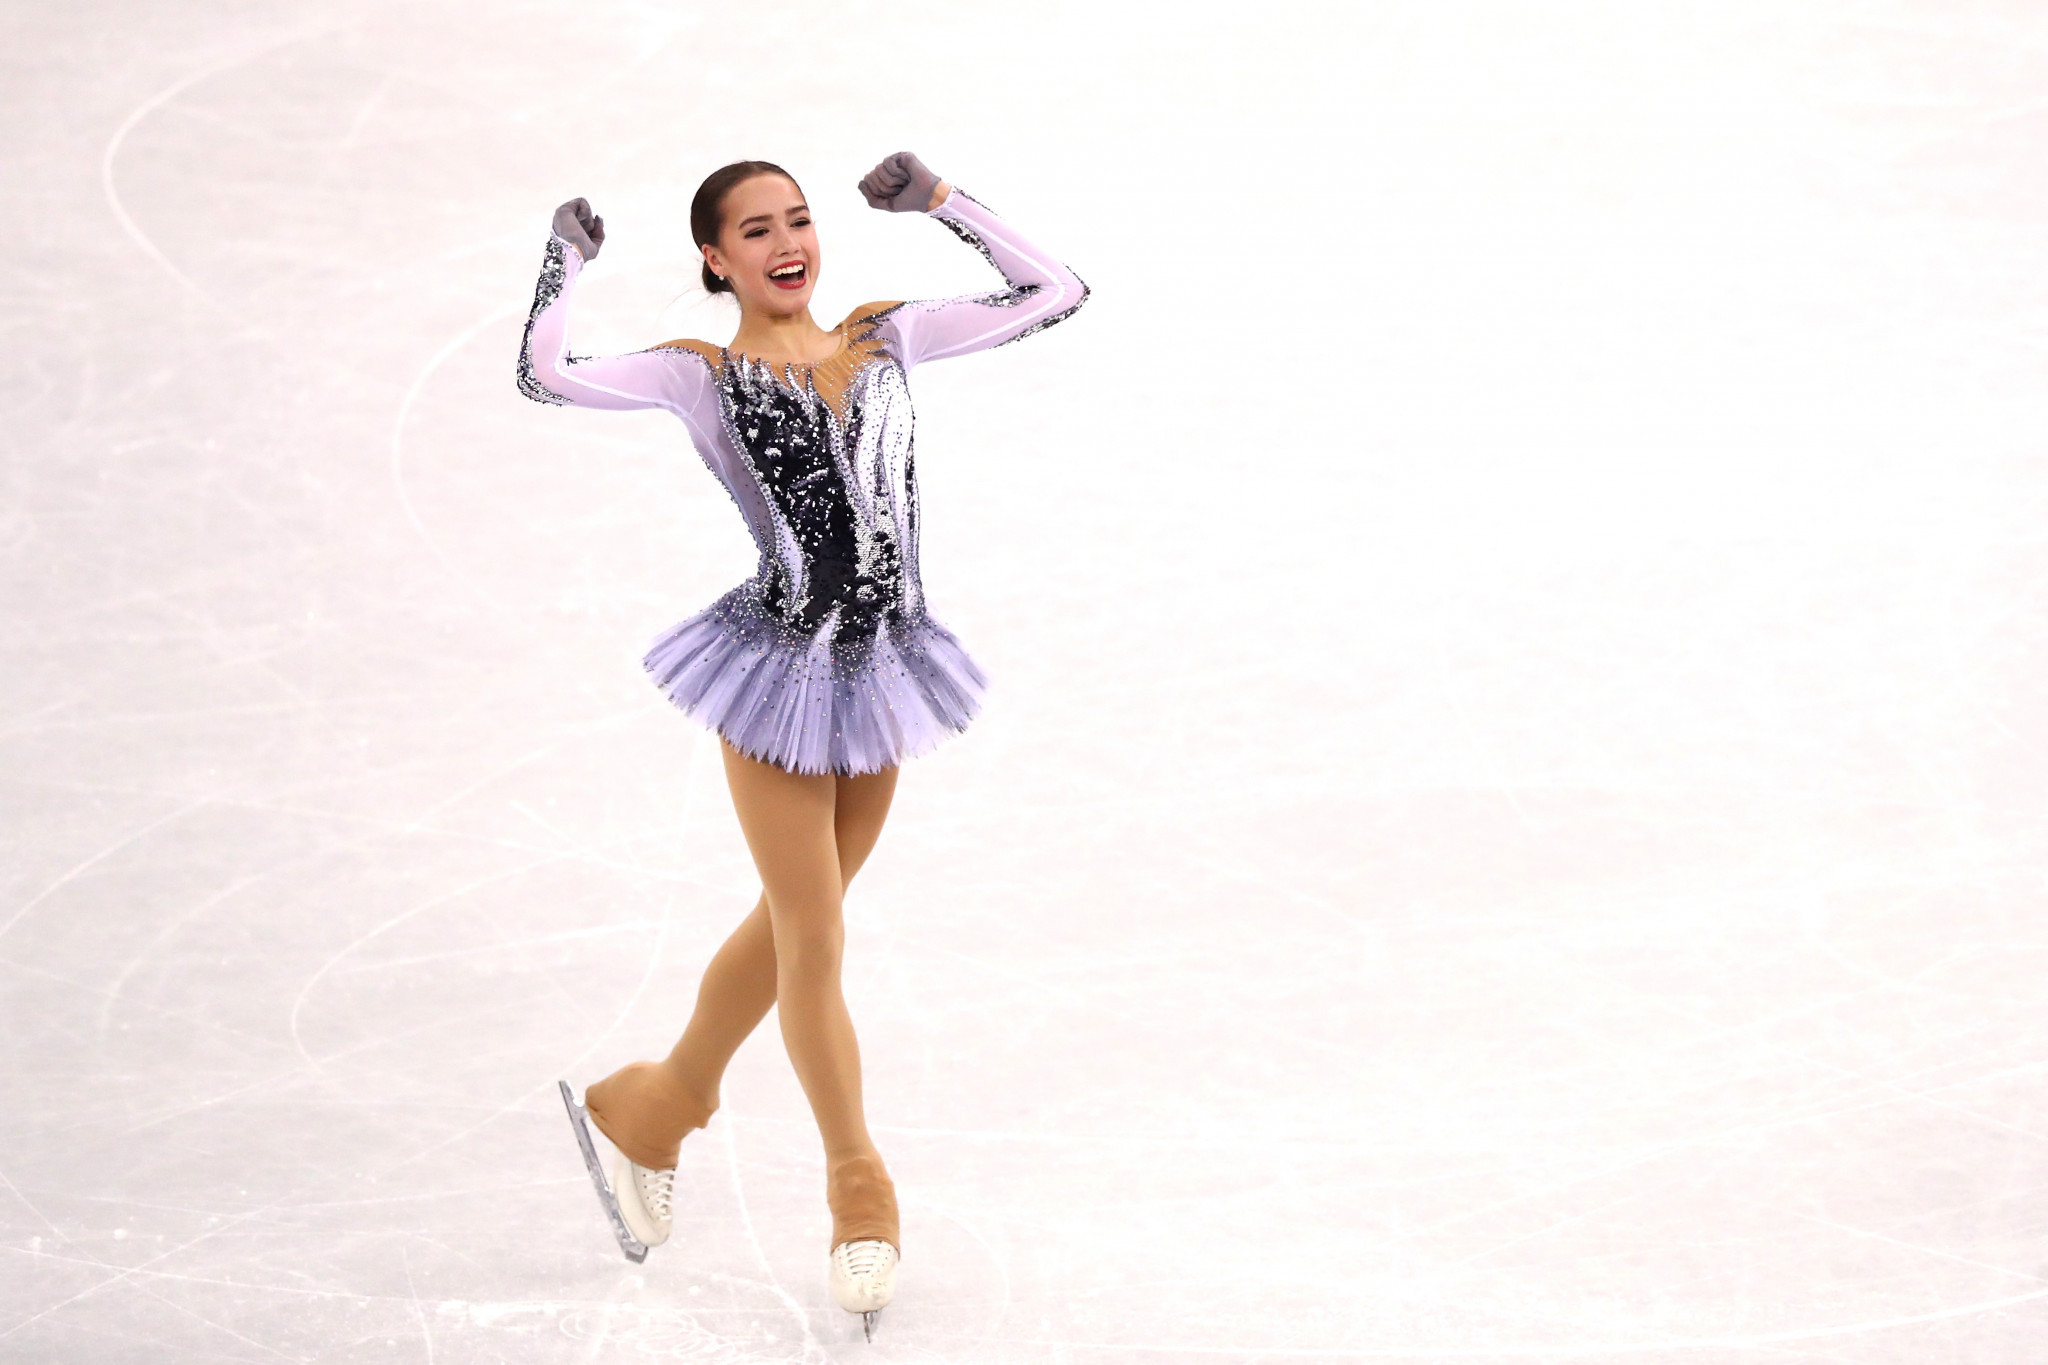 Olympic champion Alina Zagitova is among the athletes at the training camp in Novogorsk ©Getty Images